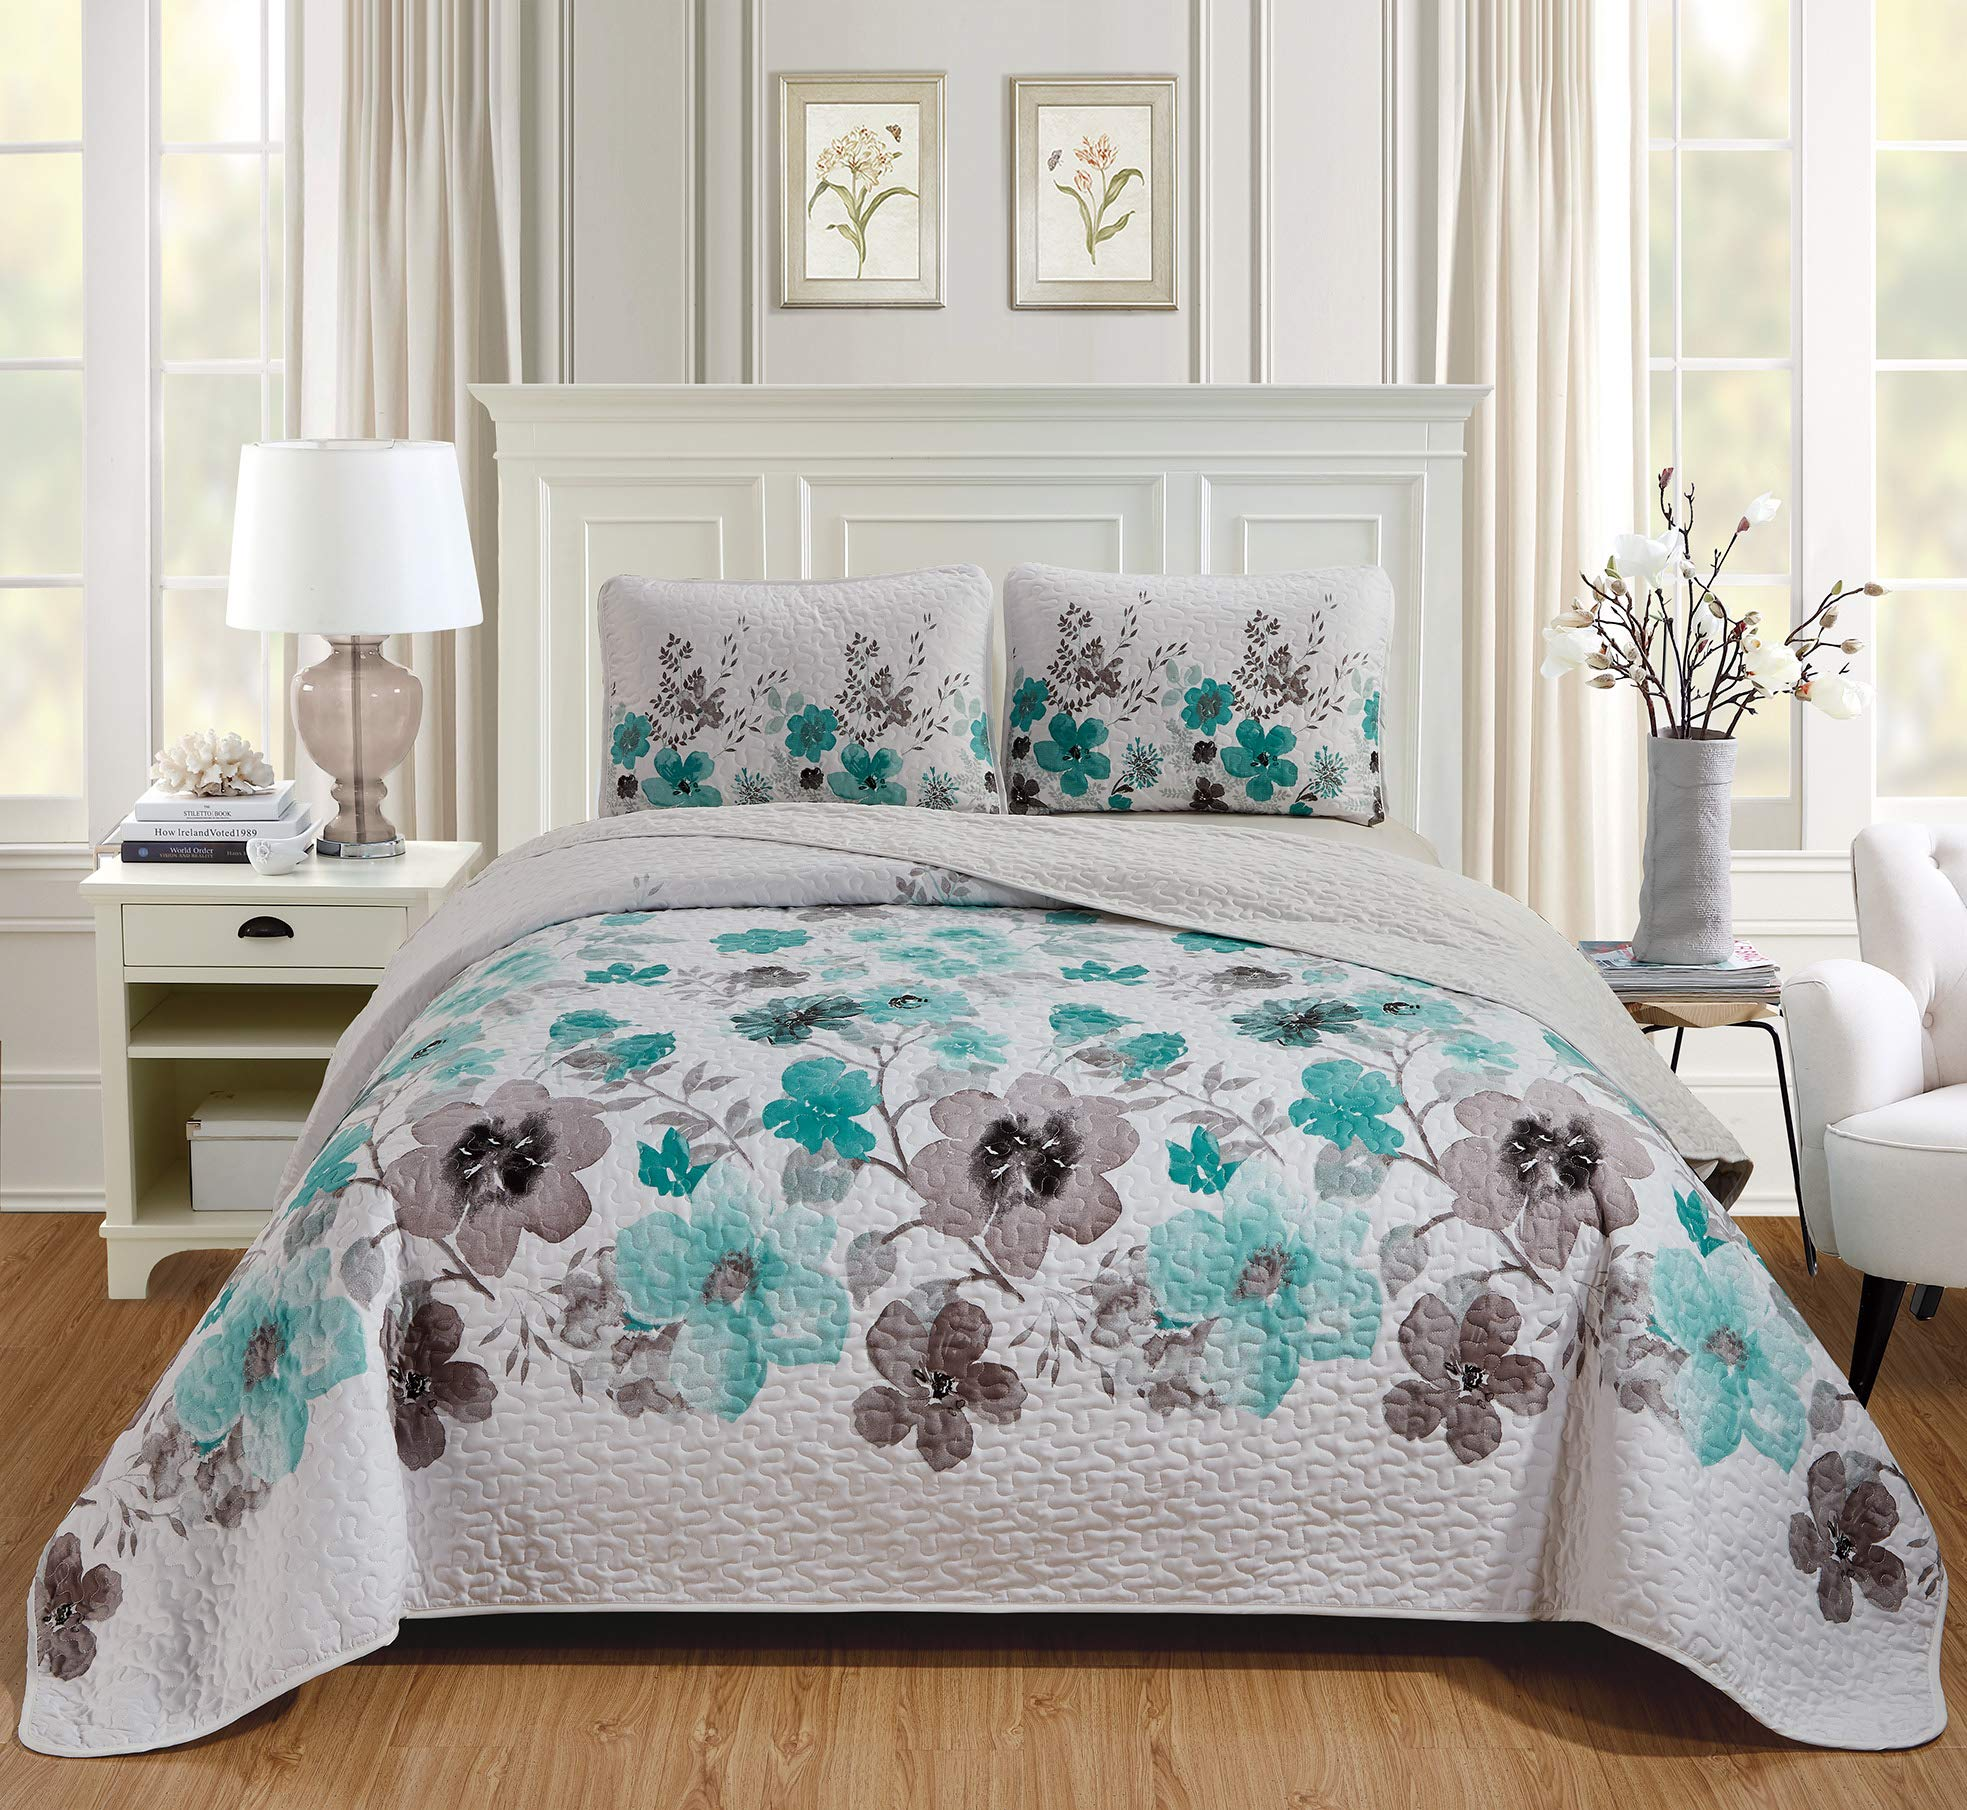 Kids Zone Home Linen Turquoise Lily 2pc Twin/Twin Extra Long Over Size Bedspread with Beautiful Turquoise Flowers Print by Kids Zone Home Linen